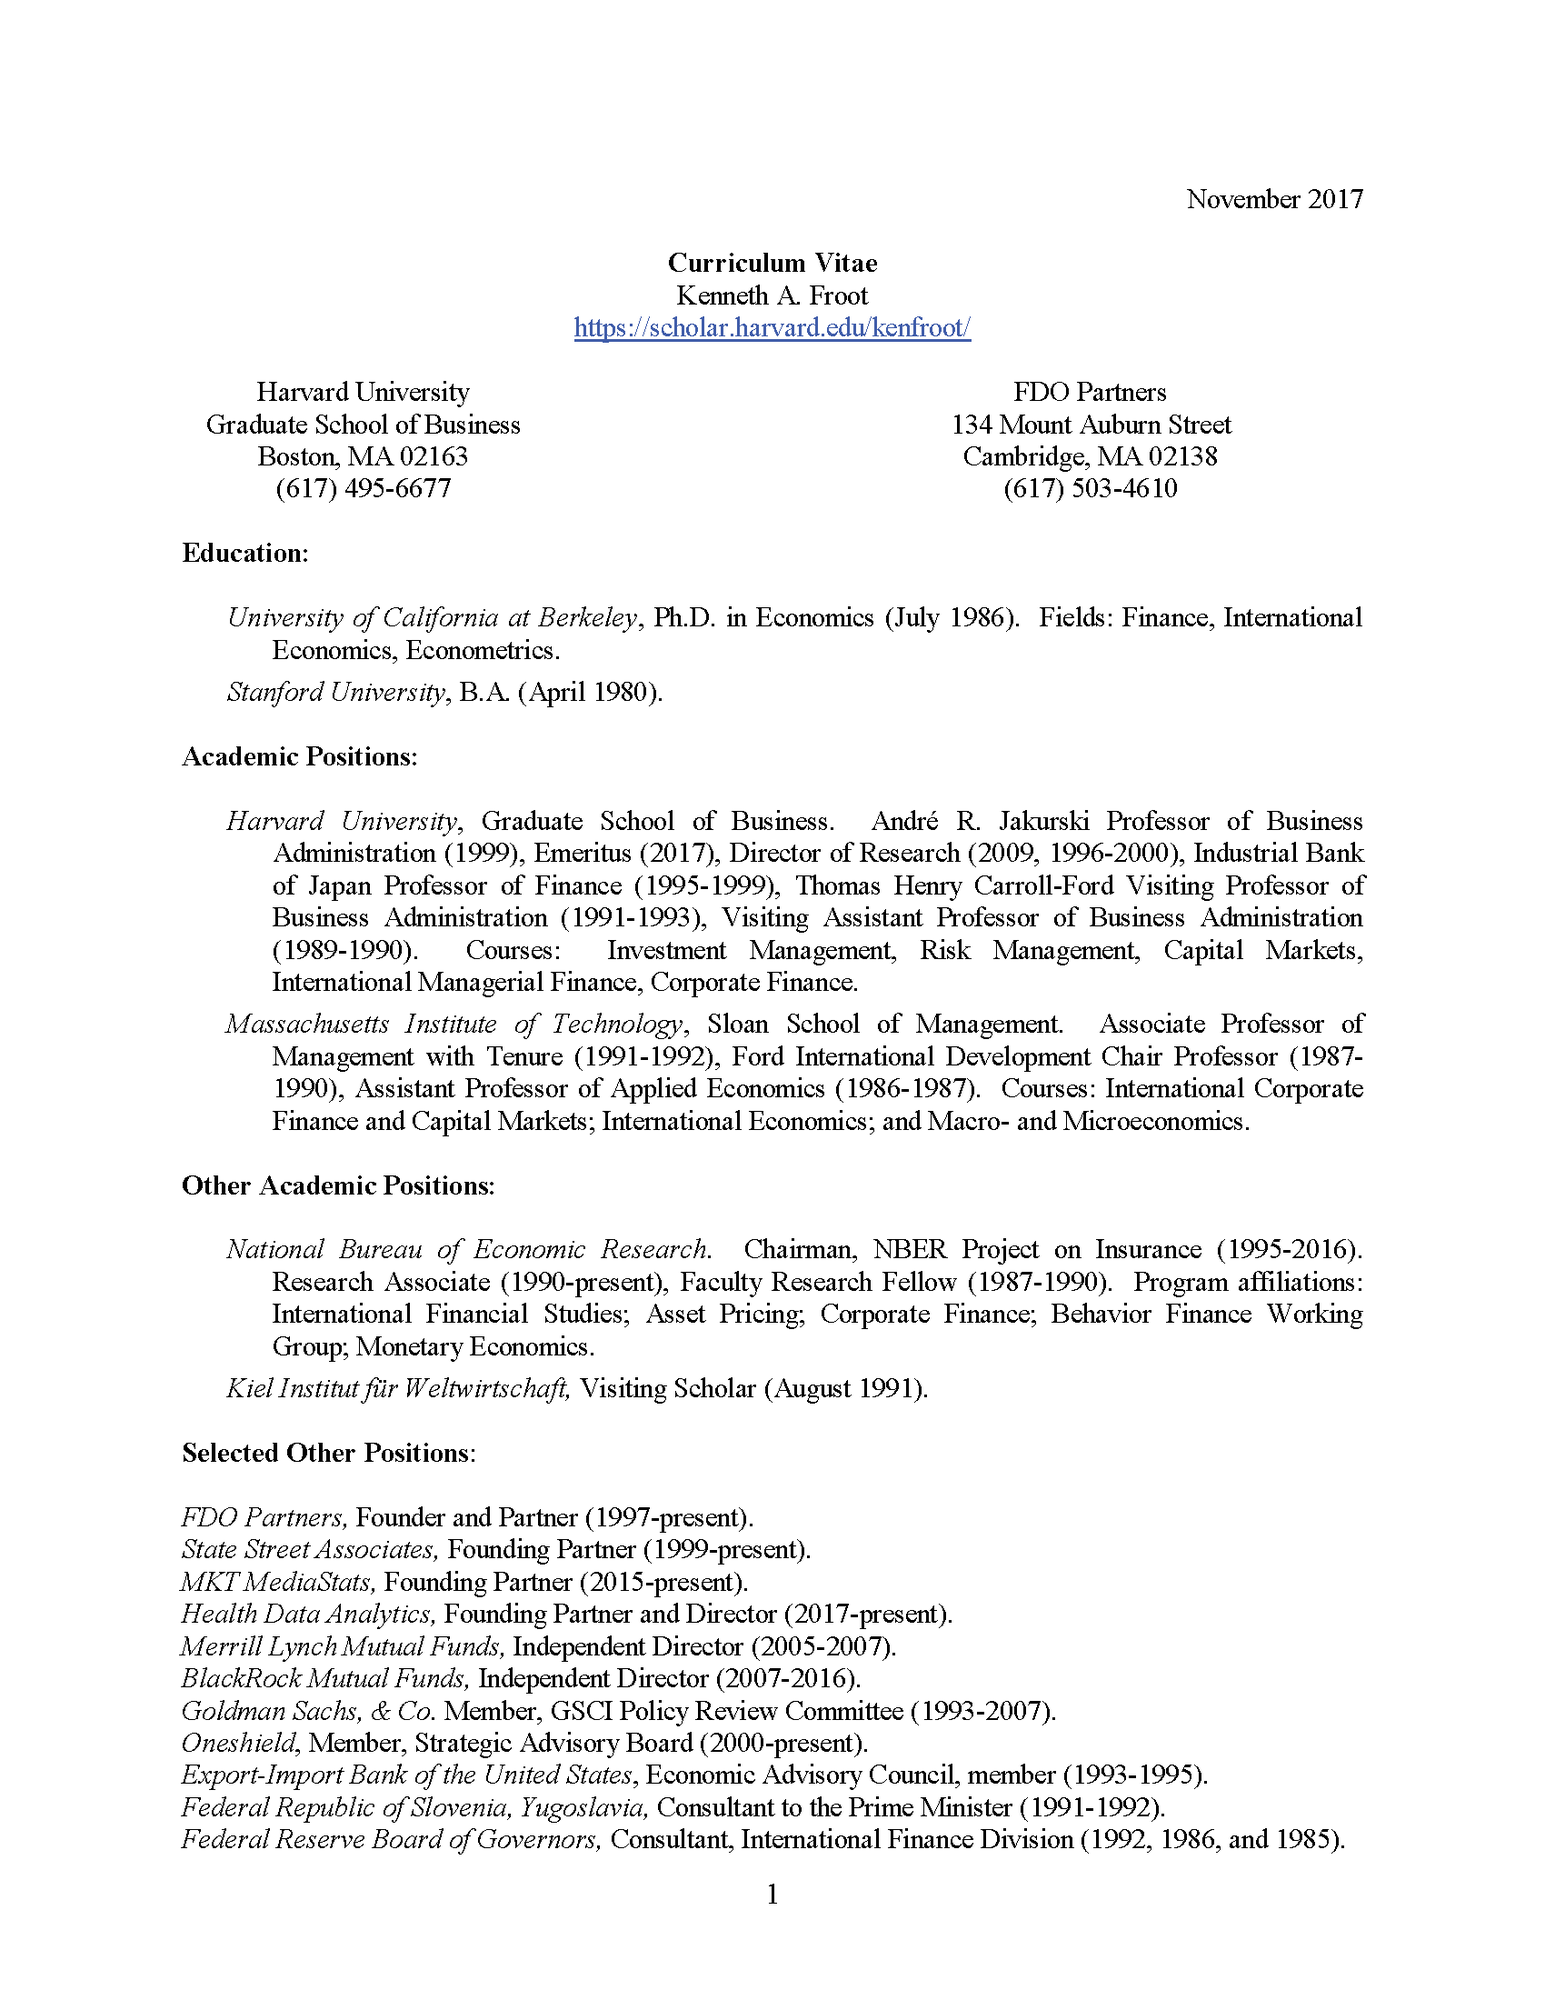 Curriculum Vitae | Kenneth A. Froot